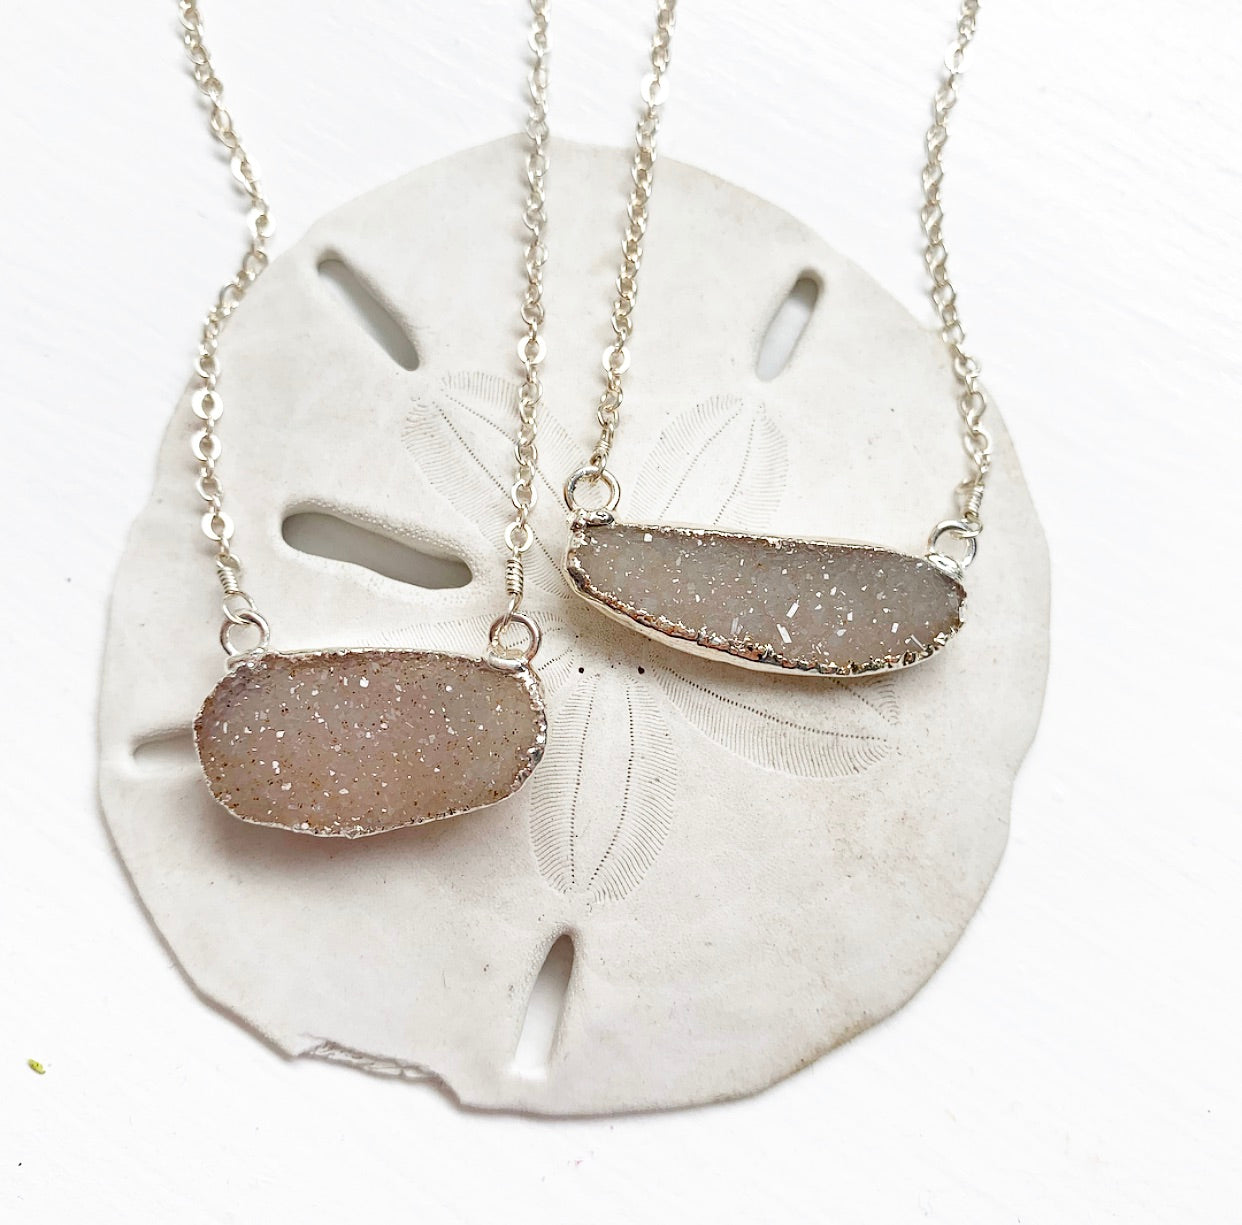 699-Druzy Necklace